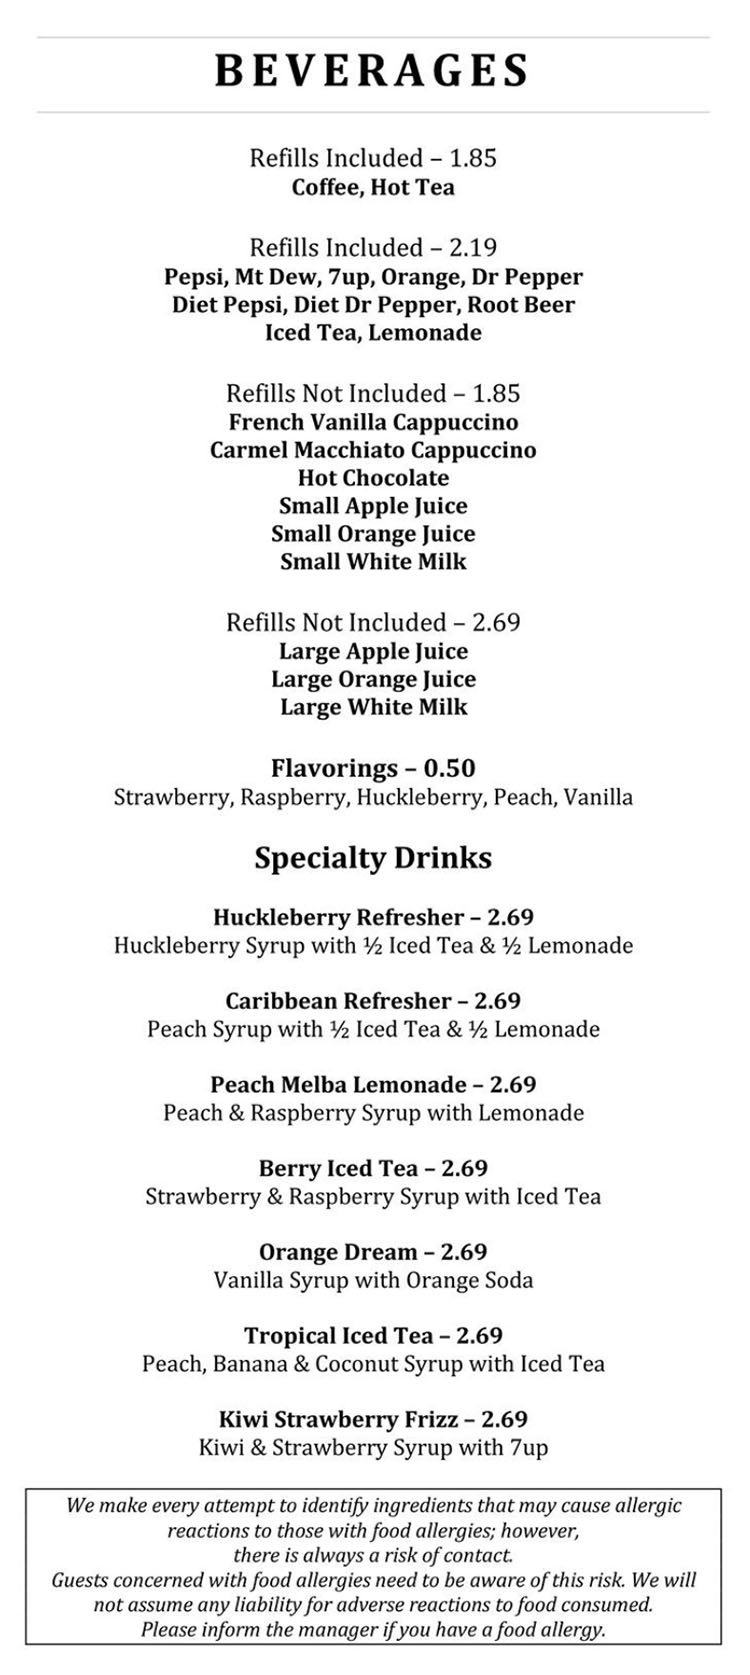 Blue Jay Cafe menu - beverages